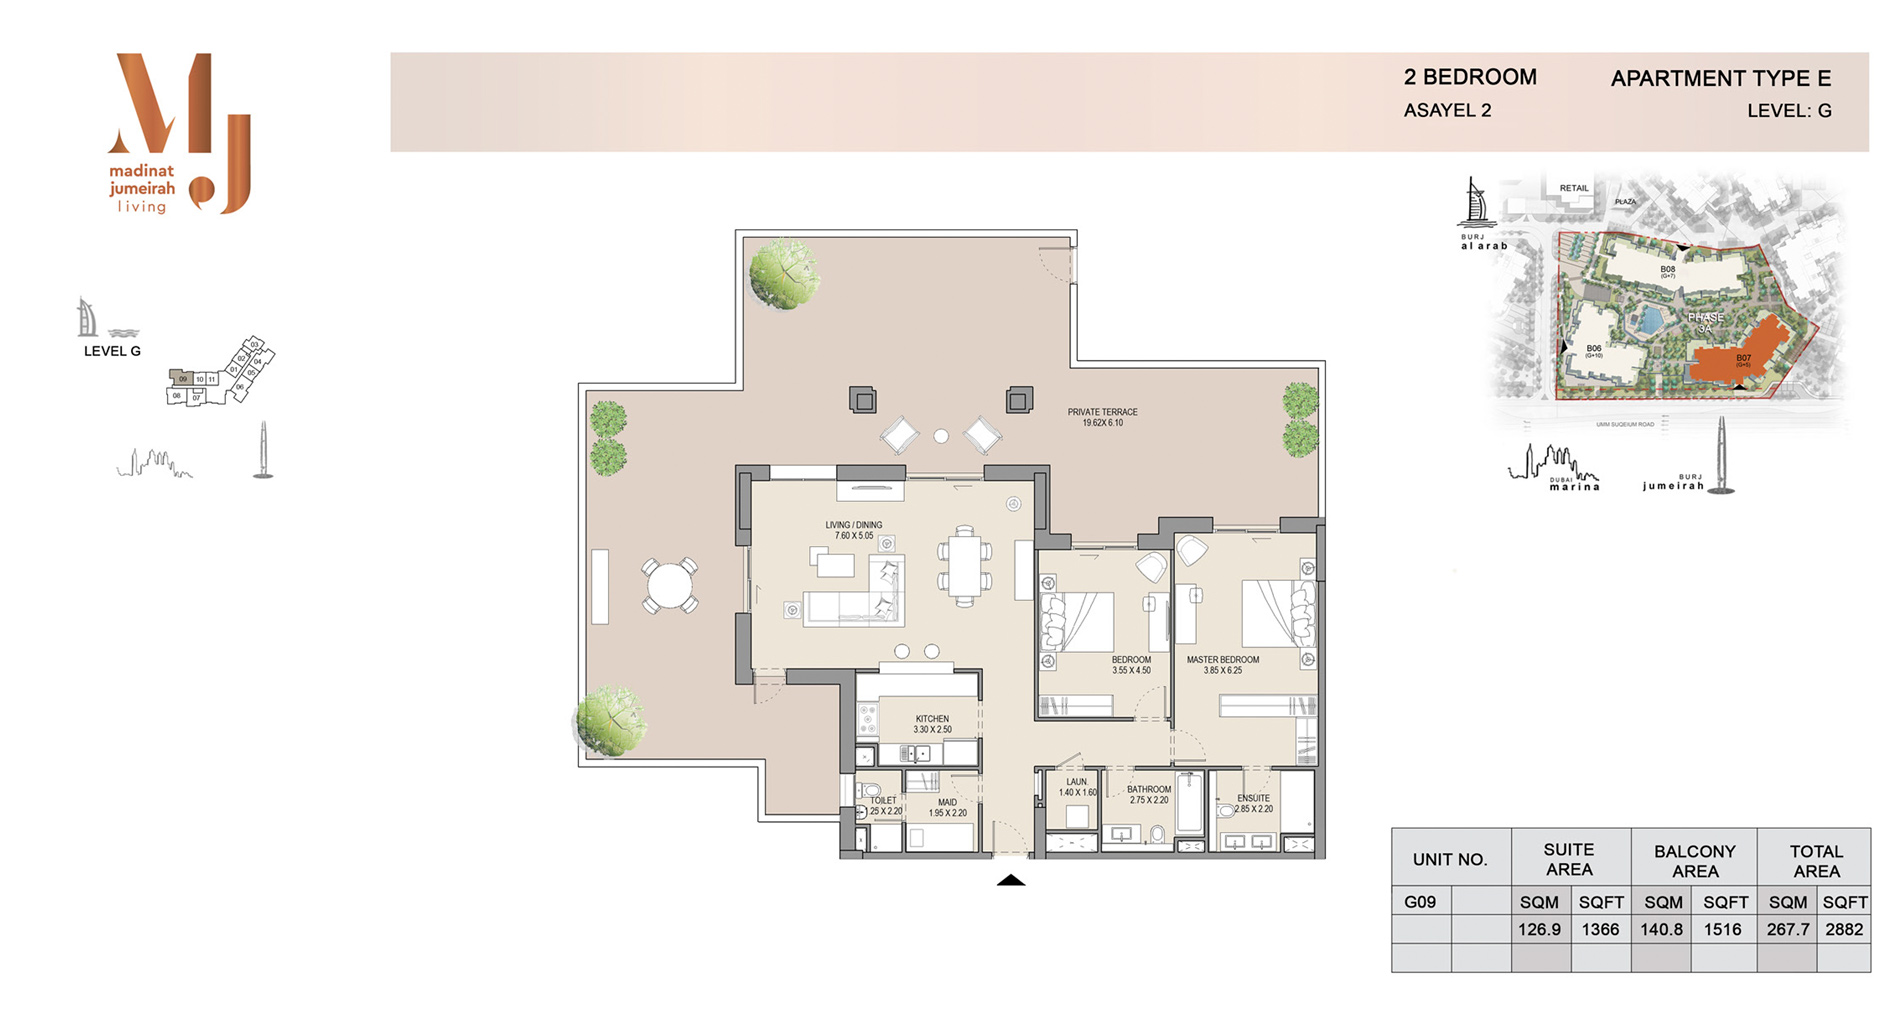 Building 2, 2 Bed Type E Level G, Size 2882    sq. ft.